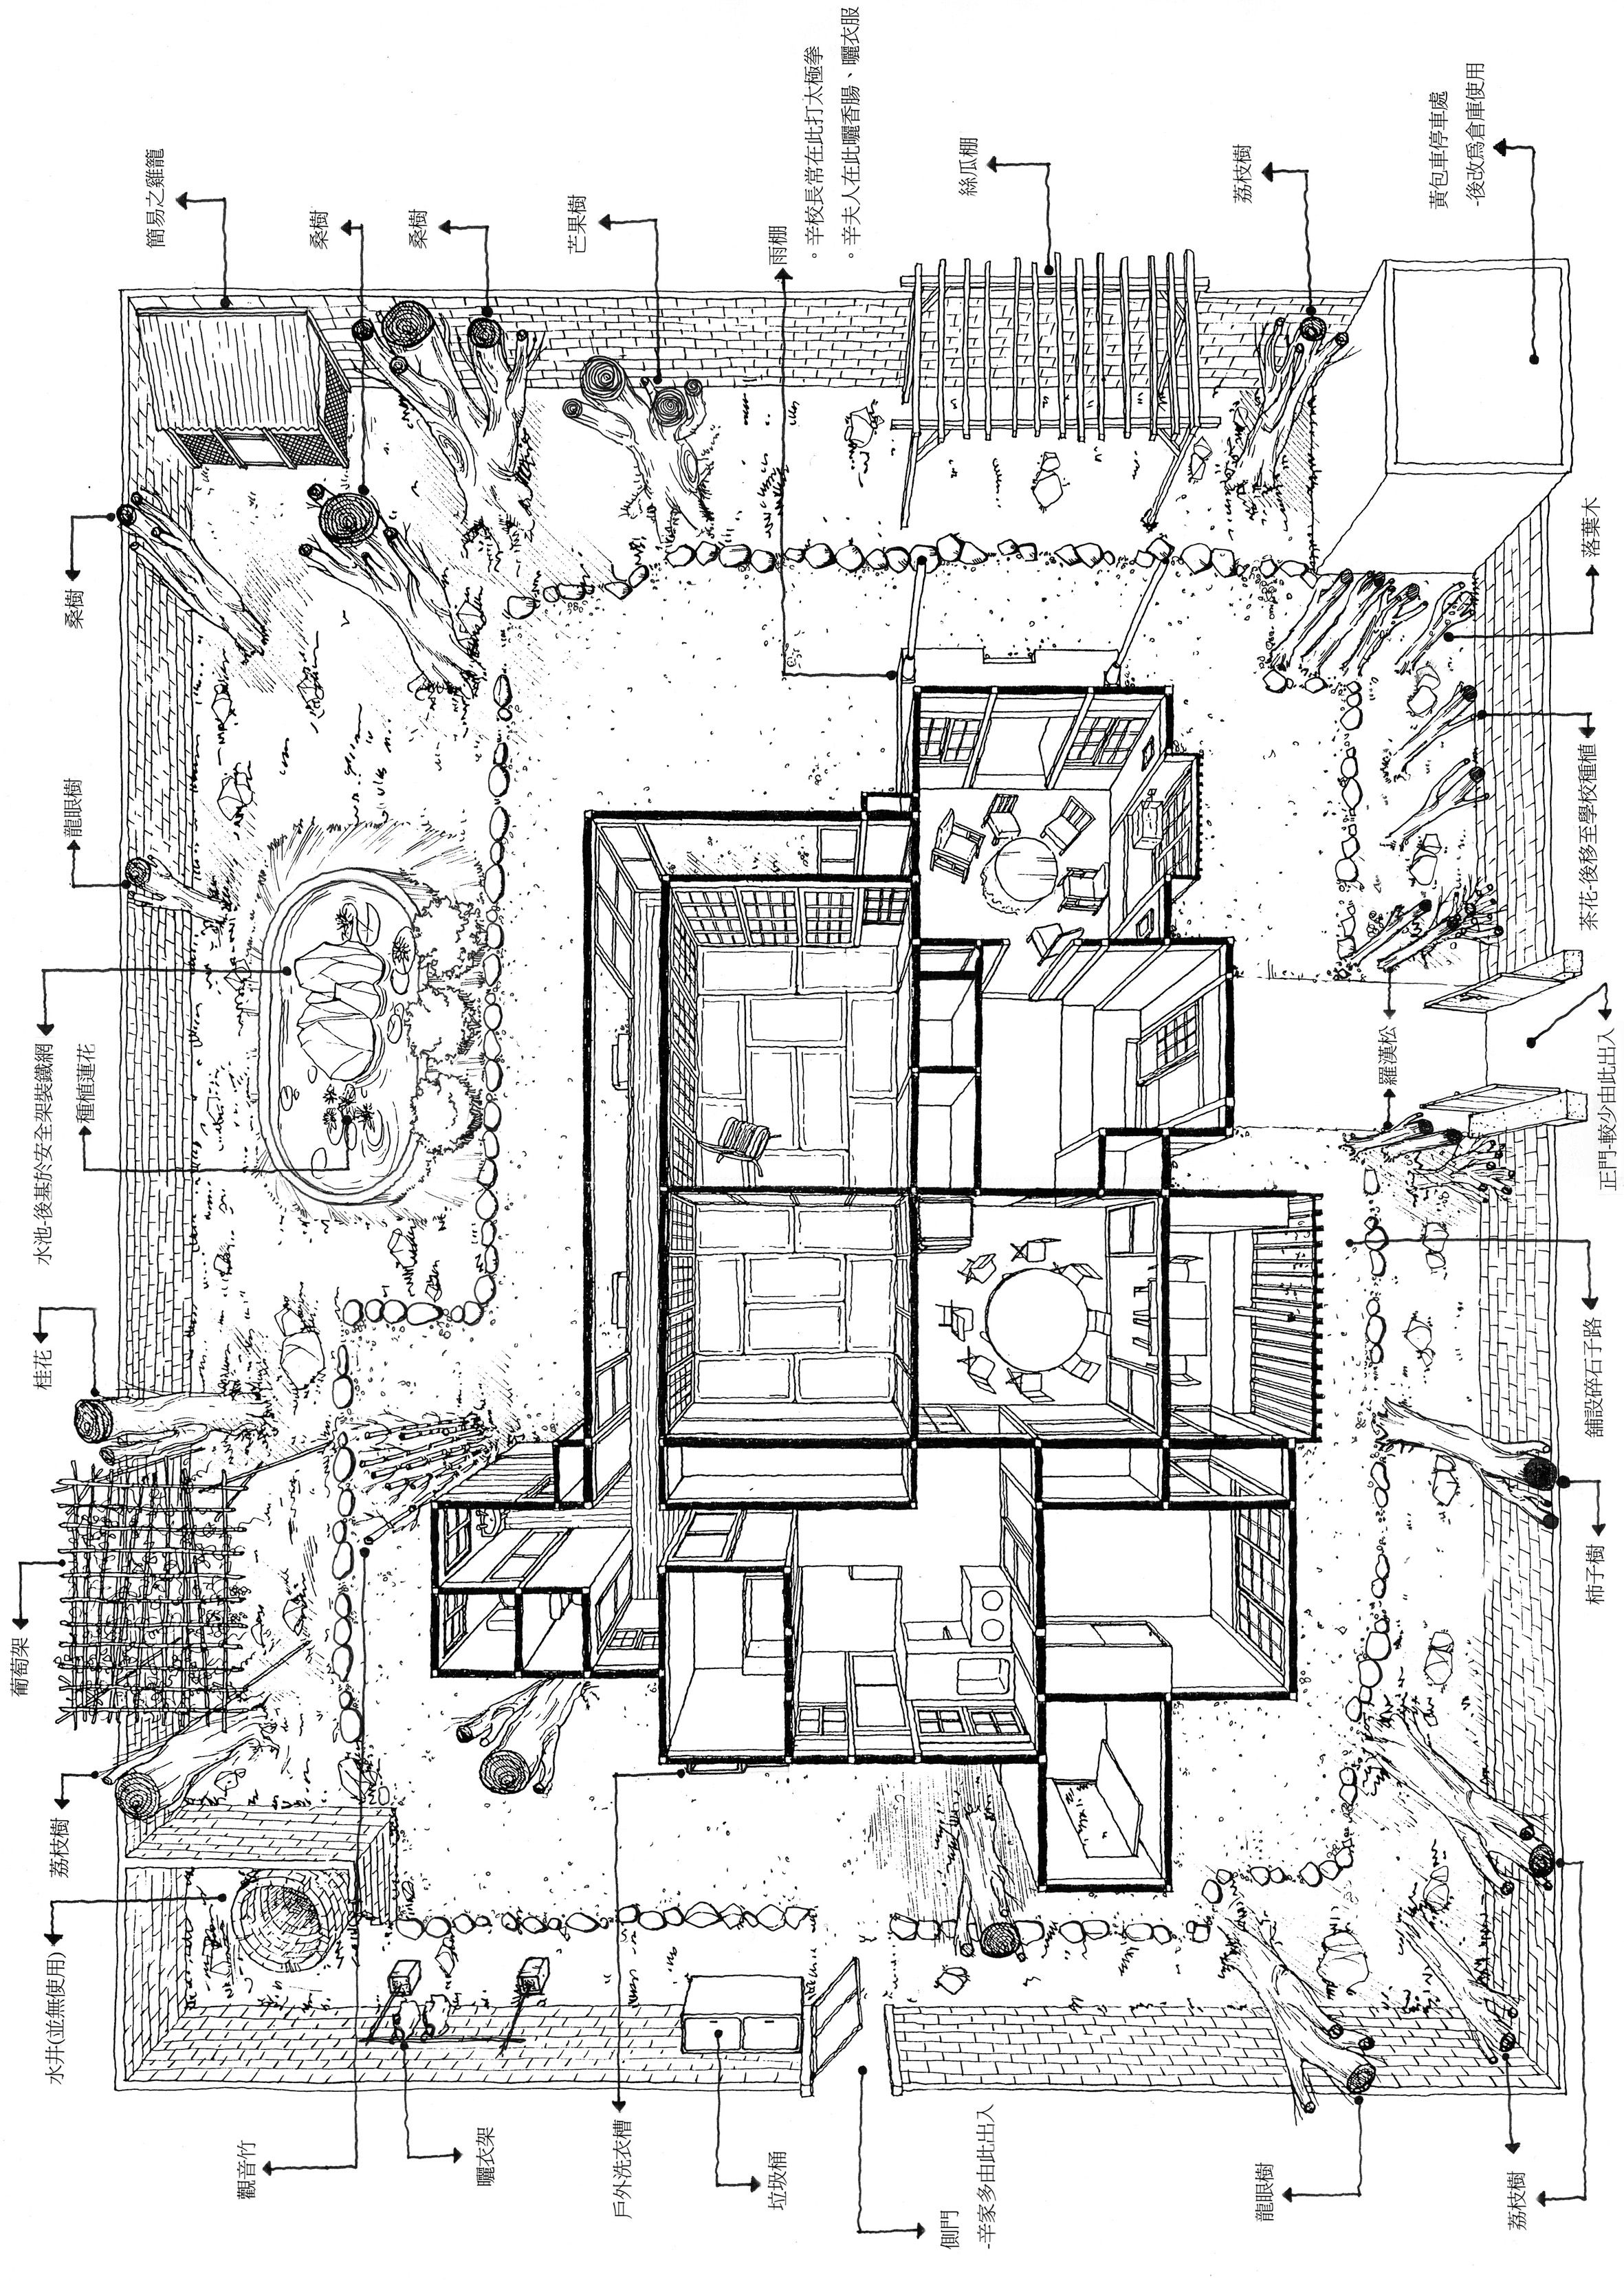 Japan Home Plans Pin By Weide Chen On Drawings Japanese Architecture